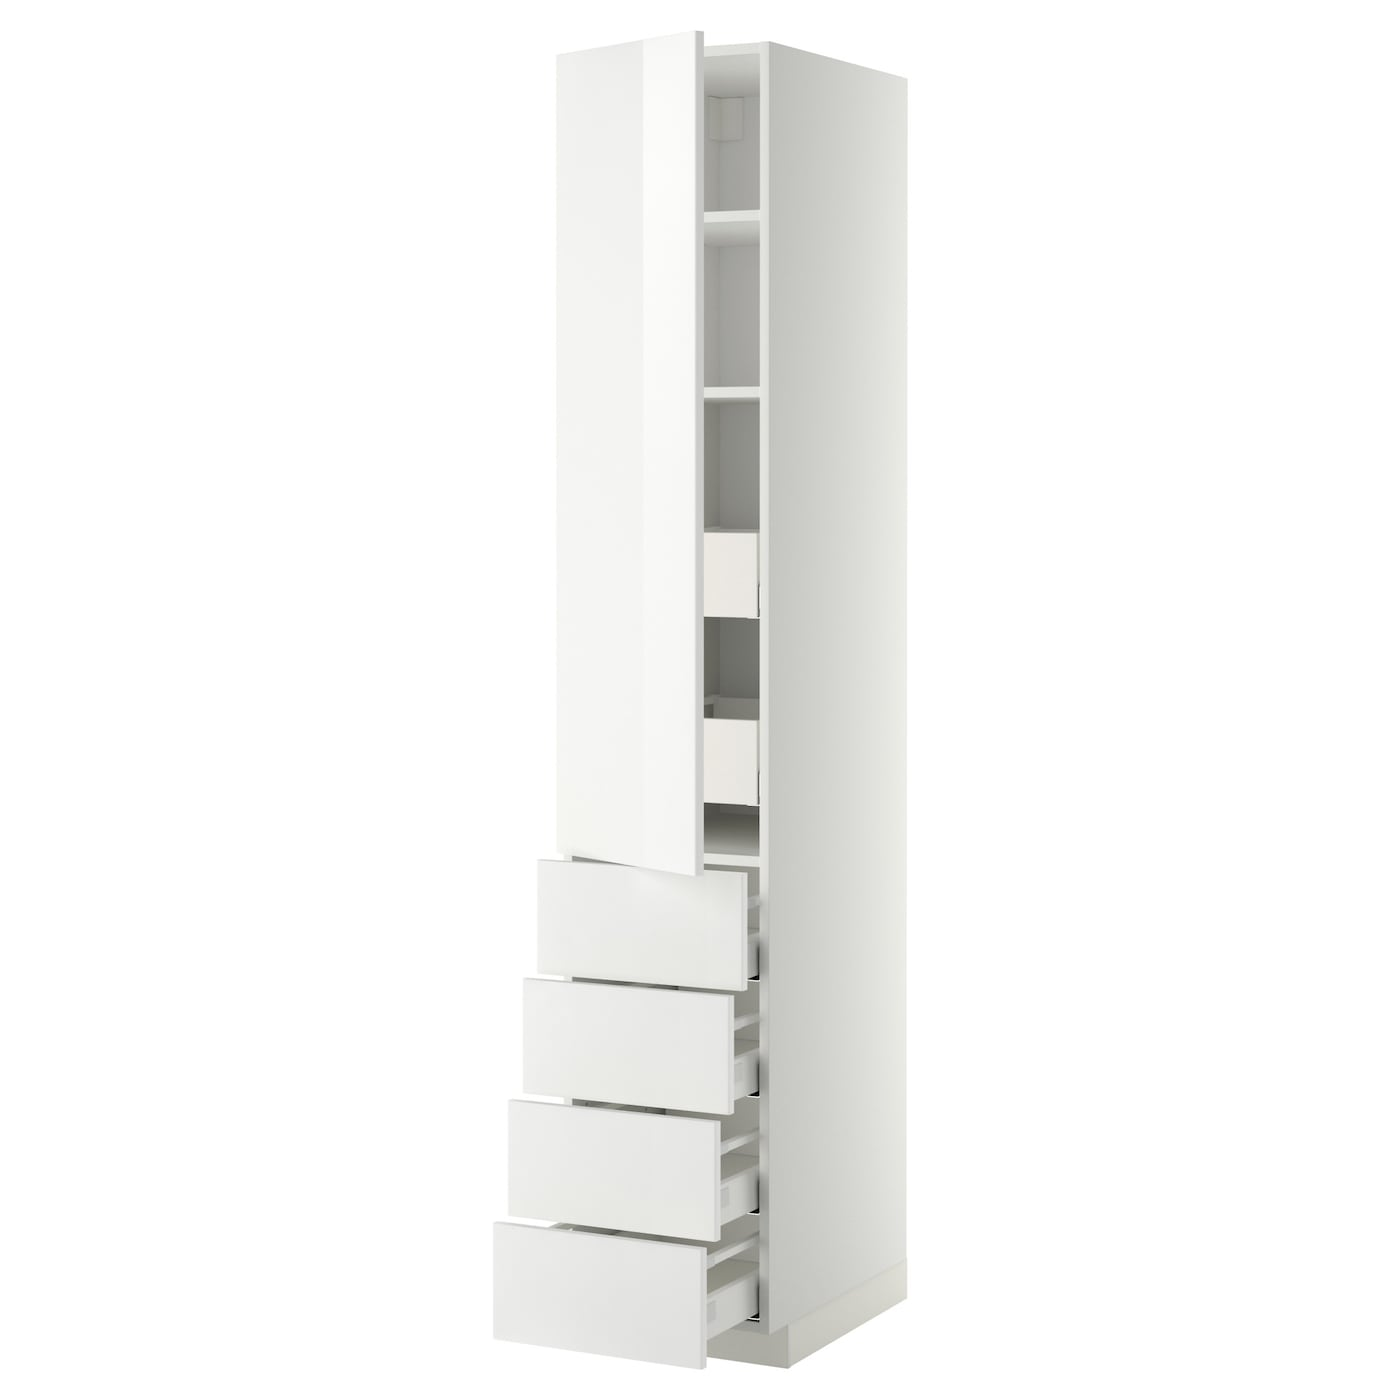 IKEA METOD/MAXIMERA hi cab w shlvs/6 drawers/dr/4 frnts Sturdy frame construction, 18 mm thick.